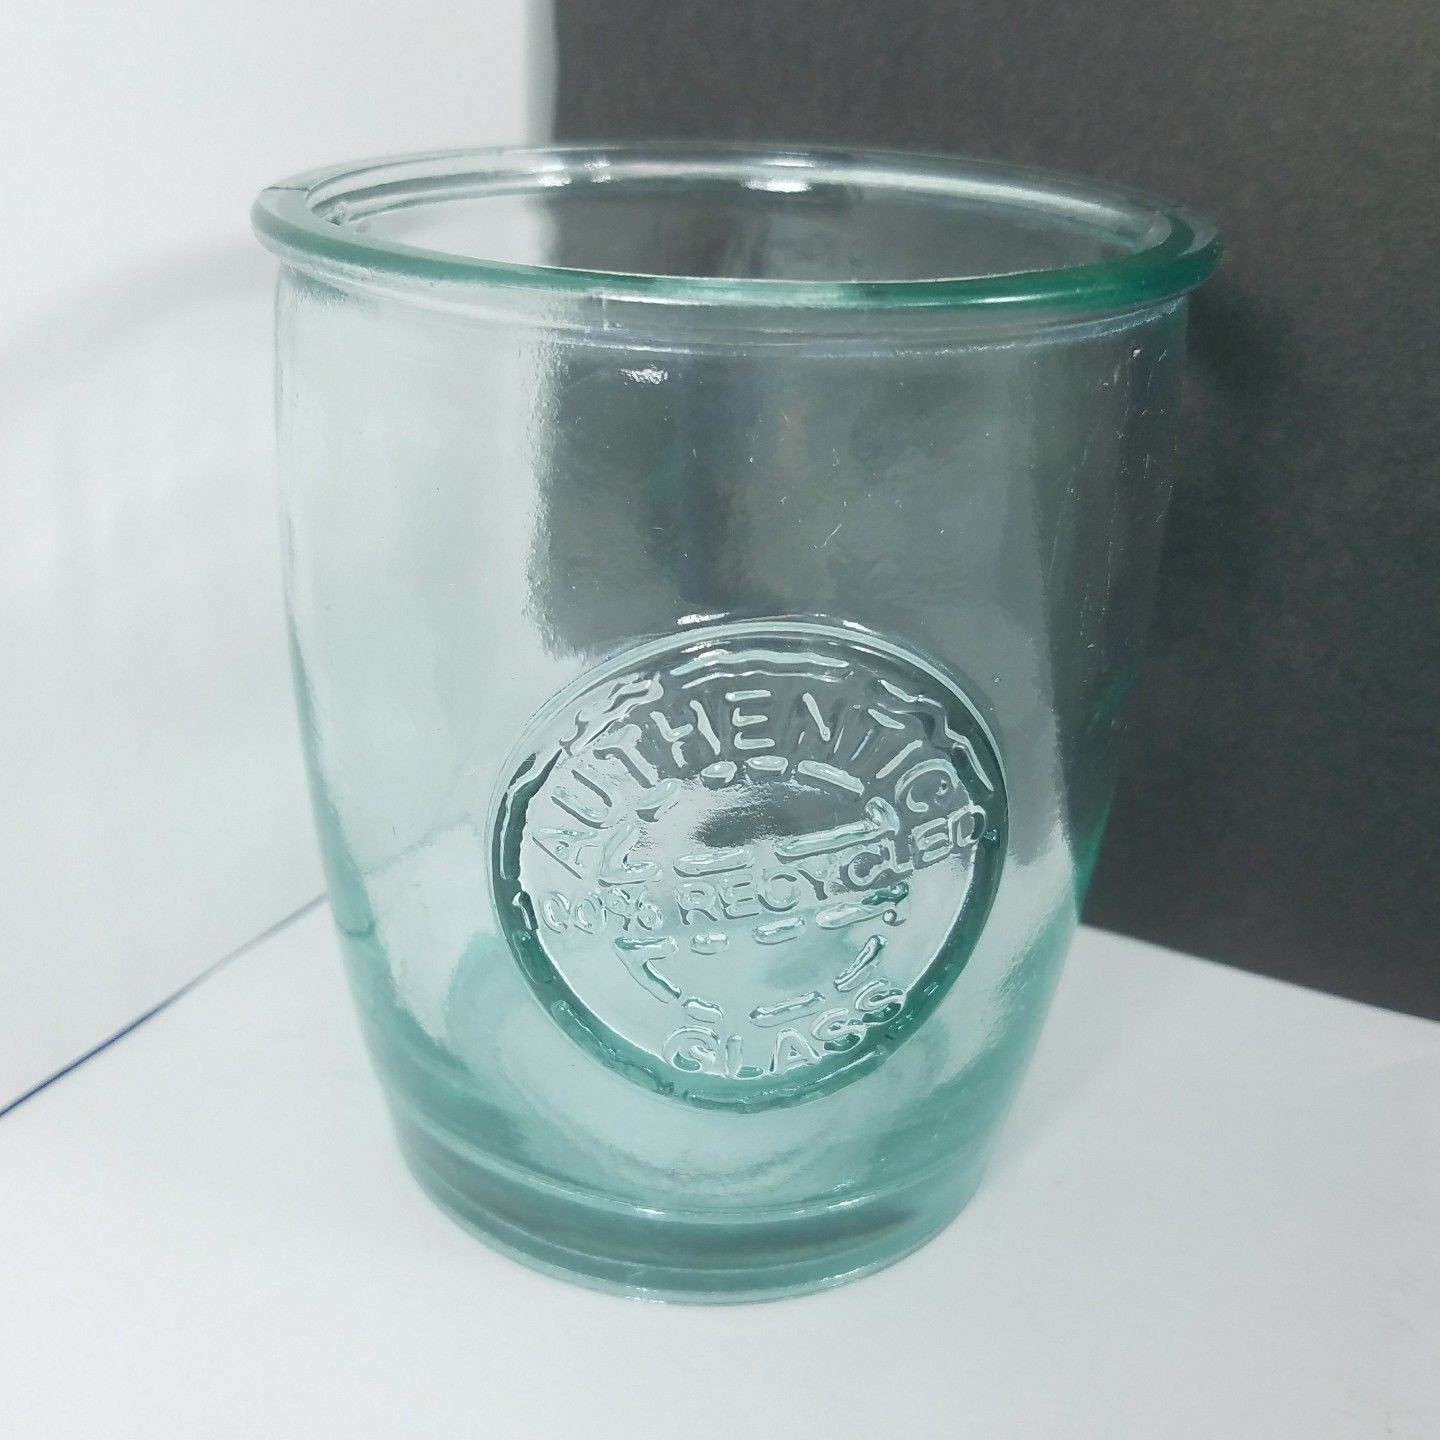 san miguel recycled glass vase of san miguel authentic 100 recycled glass green 10 oz tumbler pertaining to san miguel authentic 100 recycled glass green 10 oz tumbler 1 of 4 see more